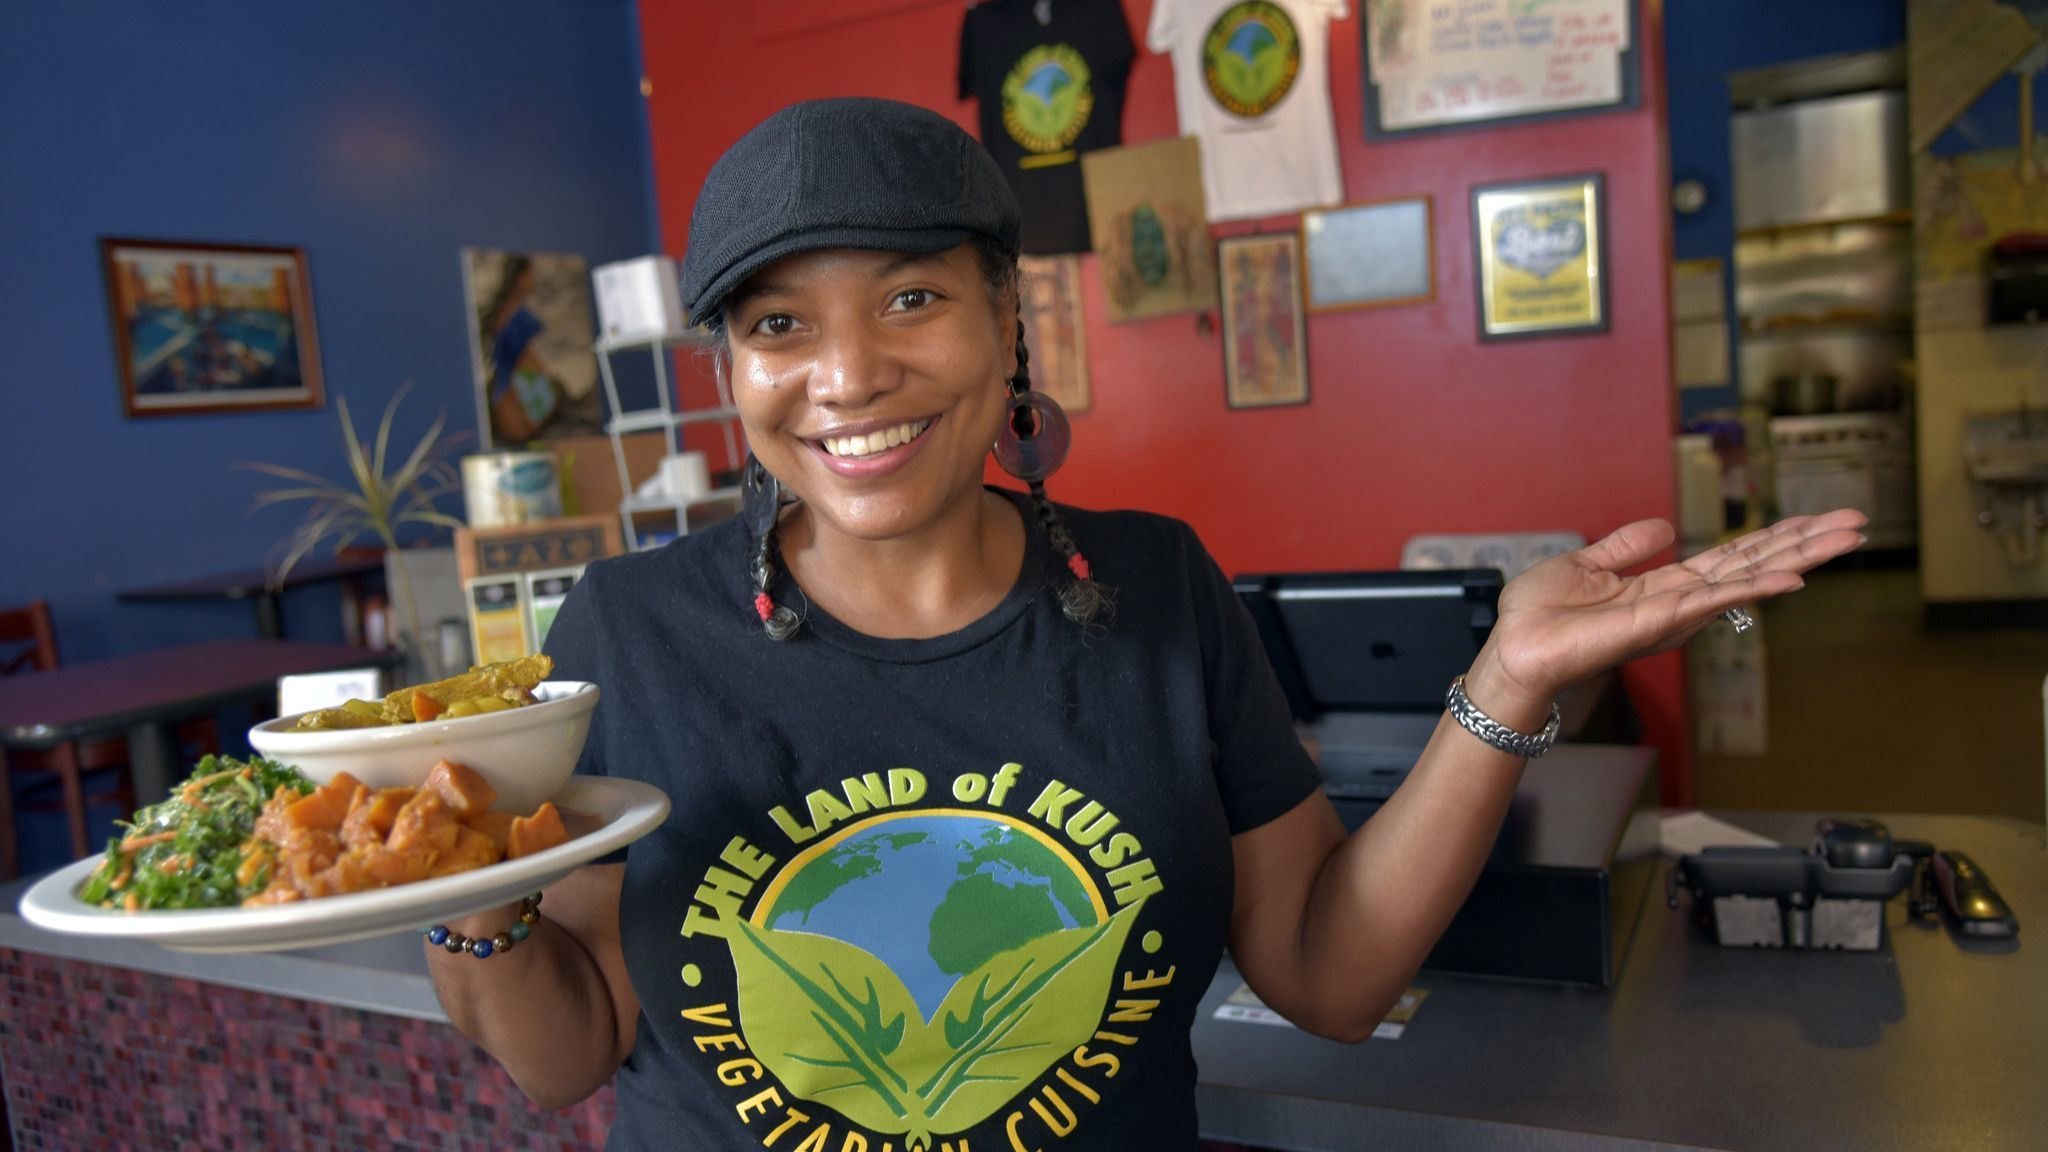 Baltimore, MD-9/16/15--Naijha Wright, co-owner of Land of Kush and also an organizer for Vegan SoulF